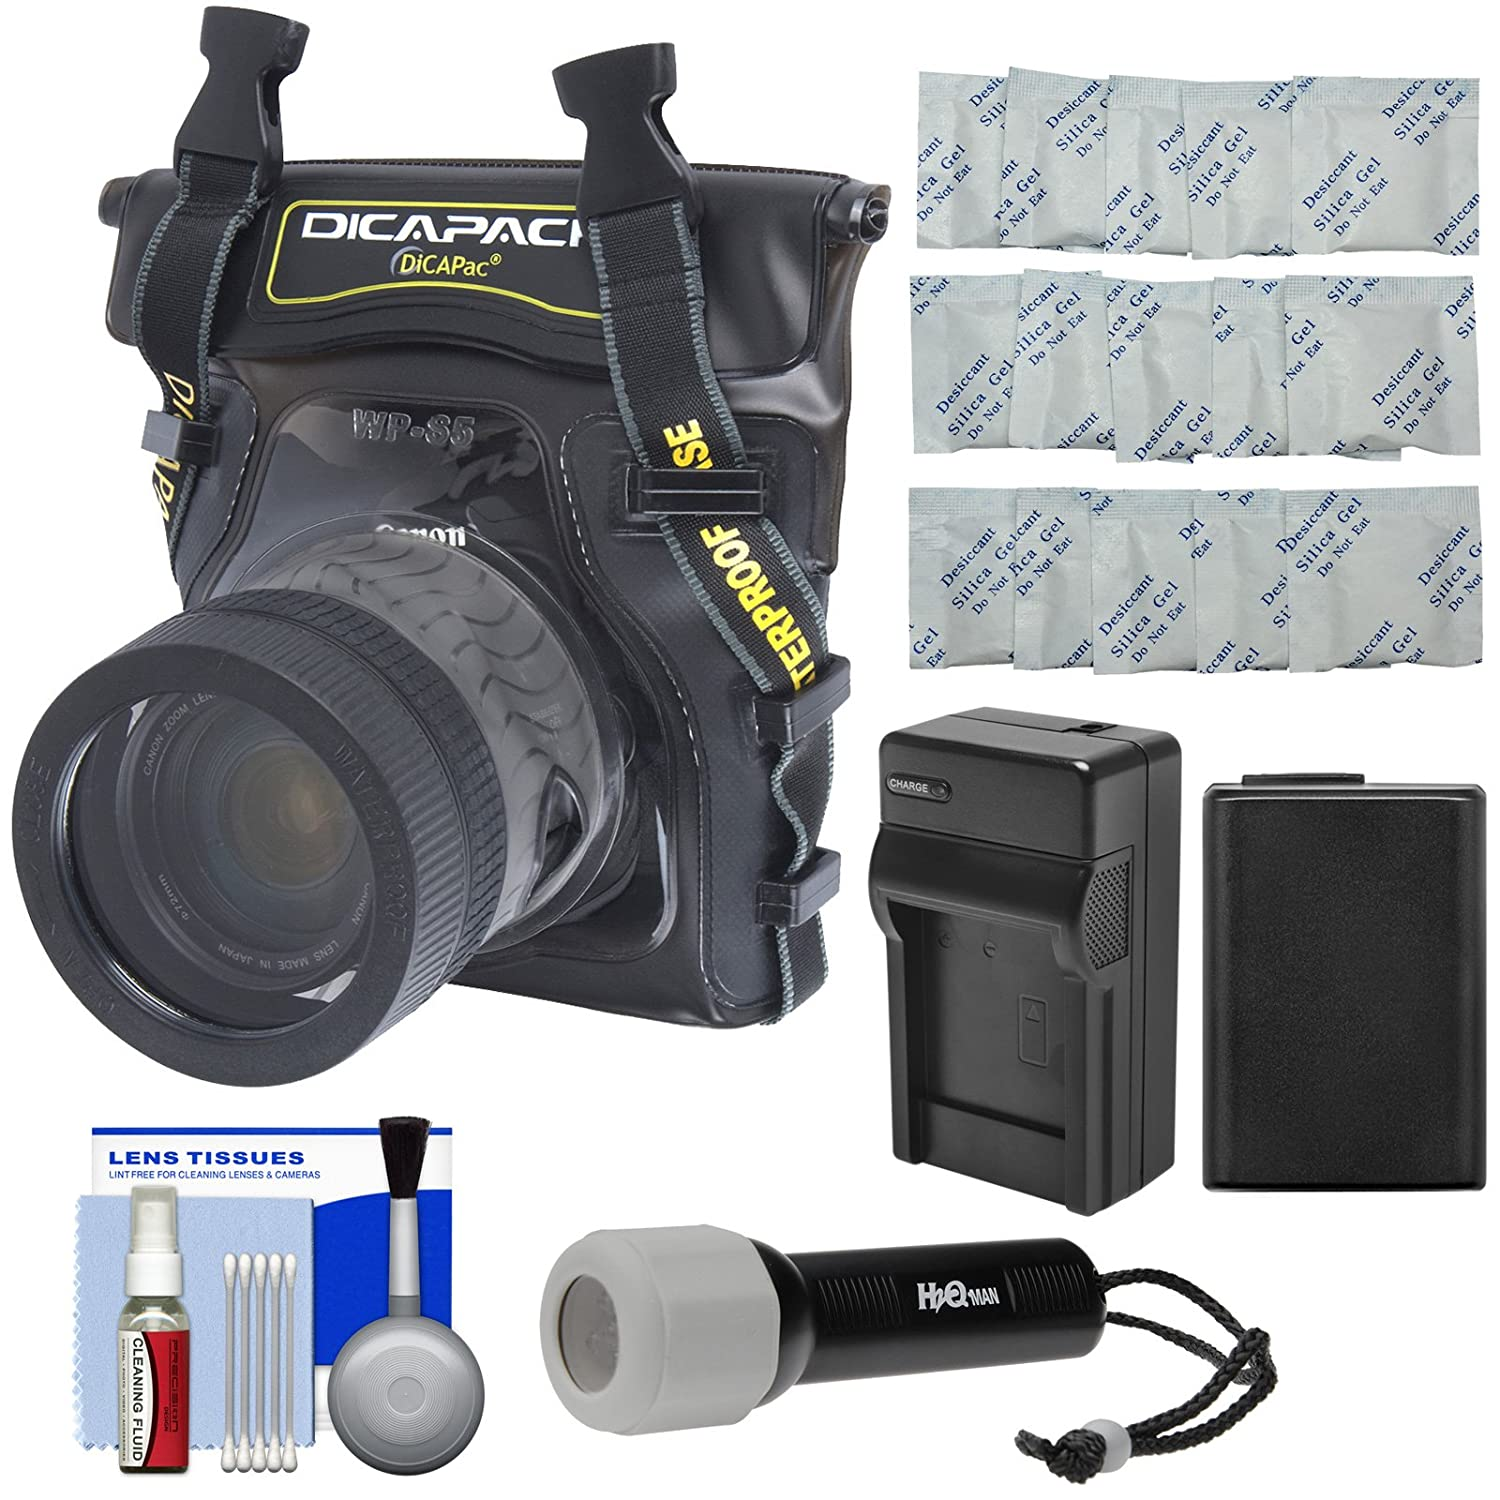 DiCAPac WP-S5 Waterproof Case for Compact DSLR Cameras with NP-FW50 Battery & Charger + LED Torch + Accessory Kit for Sony Alpha A7, A7R, A7S II